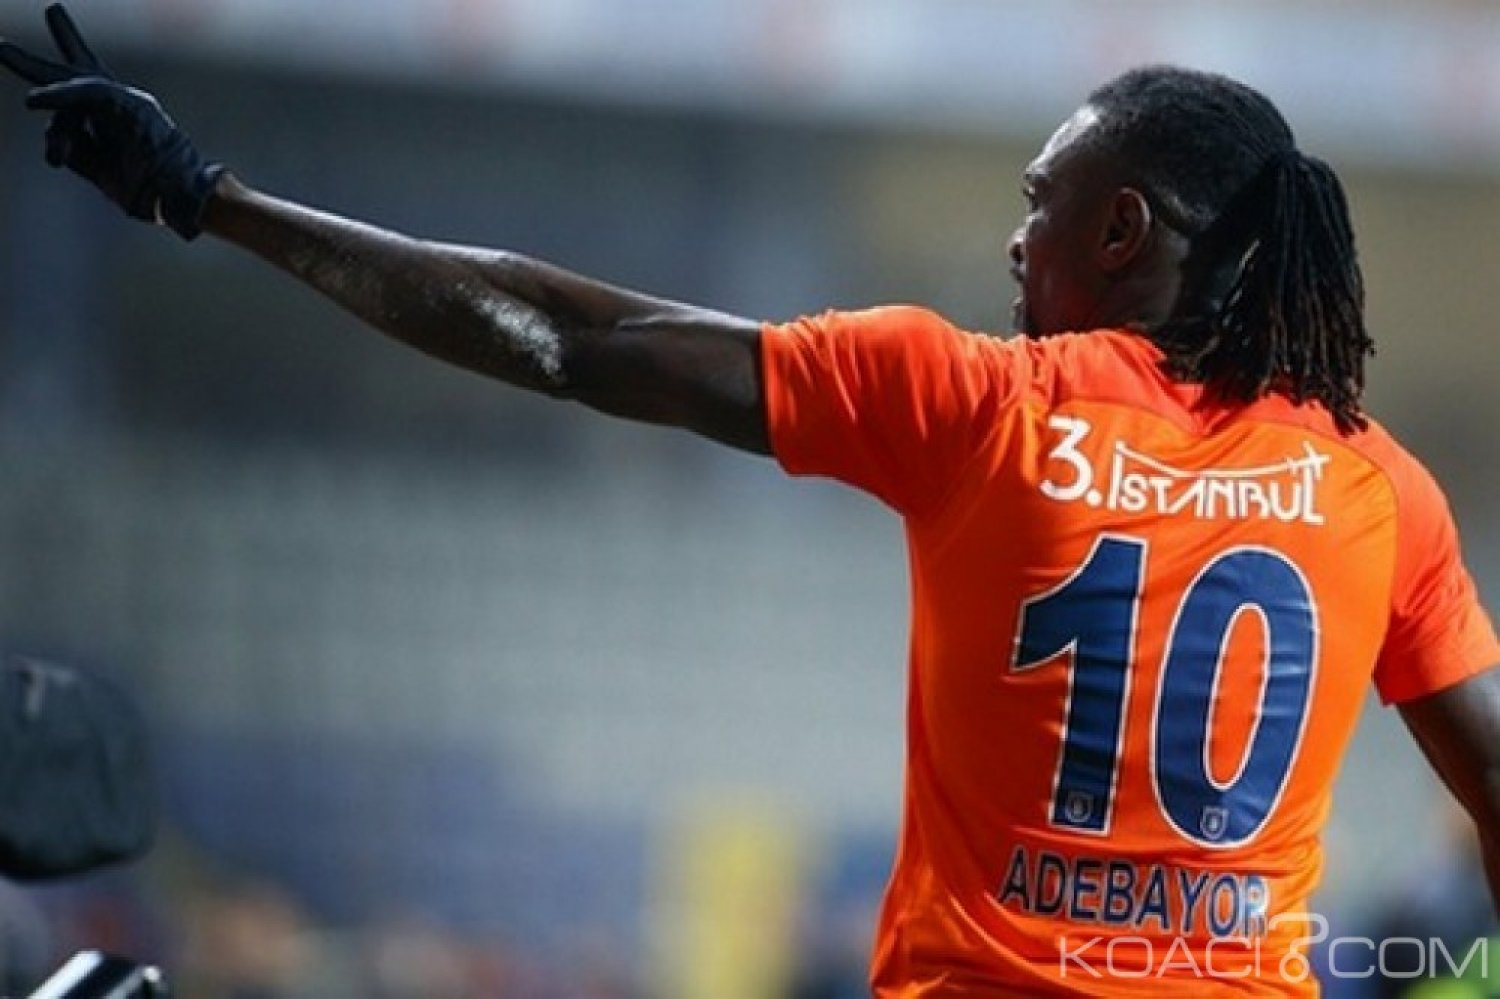 Togo : Adieux d'Adebayor aux supporters d'Istanbul Basaksehir et ses attentes